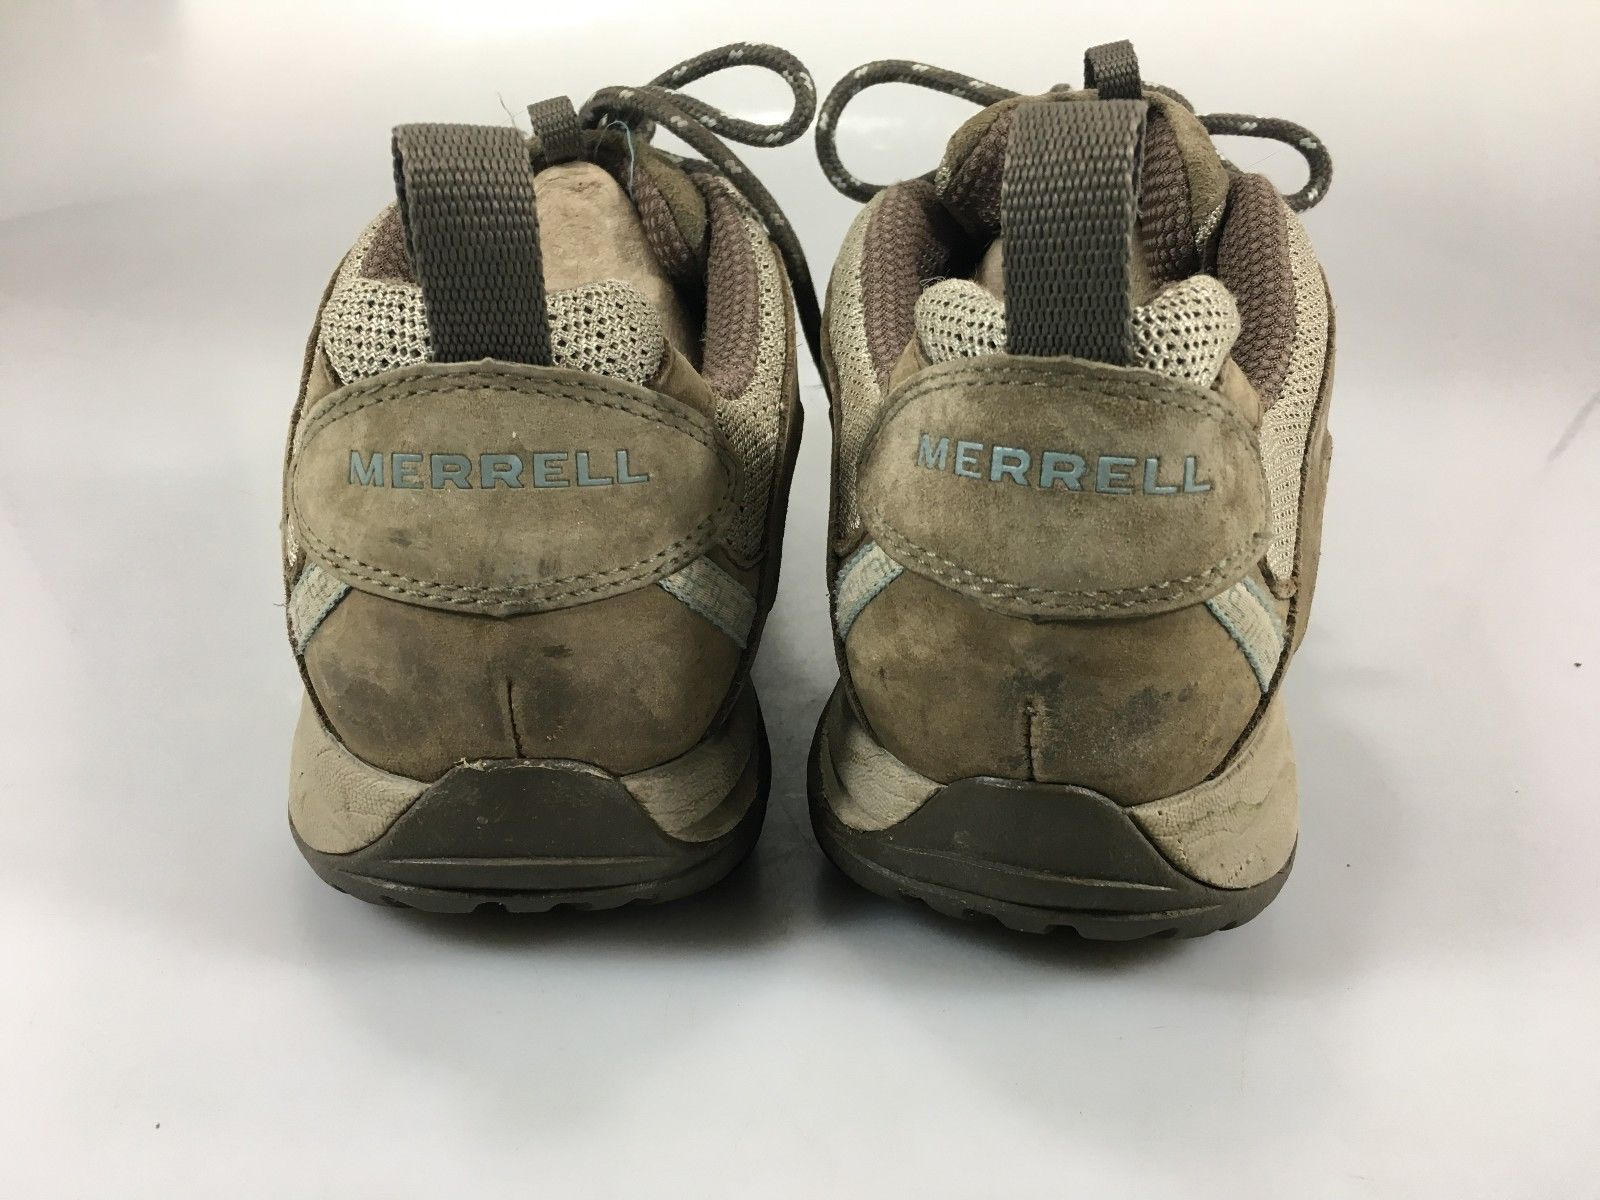 c3297edffa1f7 Merrell Womens 9 Hiking Trail Shoes Siren Sport Olive Beige Vibram Soles